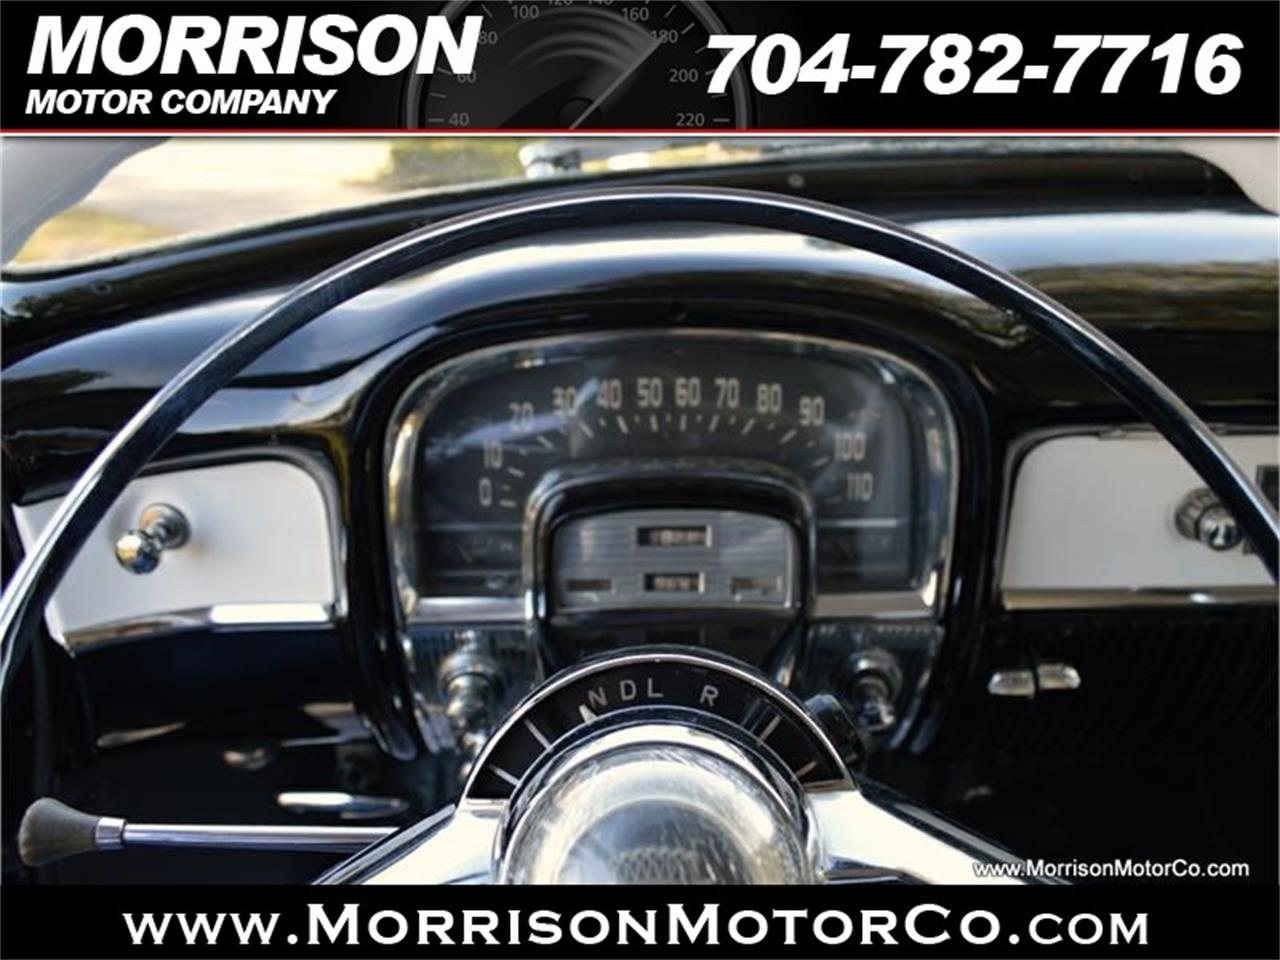 Large Picture of Classic 1951 Cadillac DeVille located in North Carolina Offered by Morrison Motor Company - MBTG